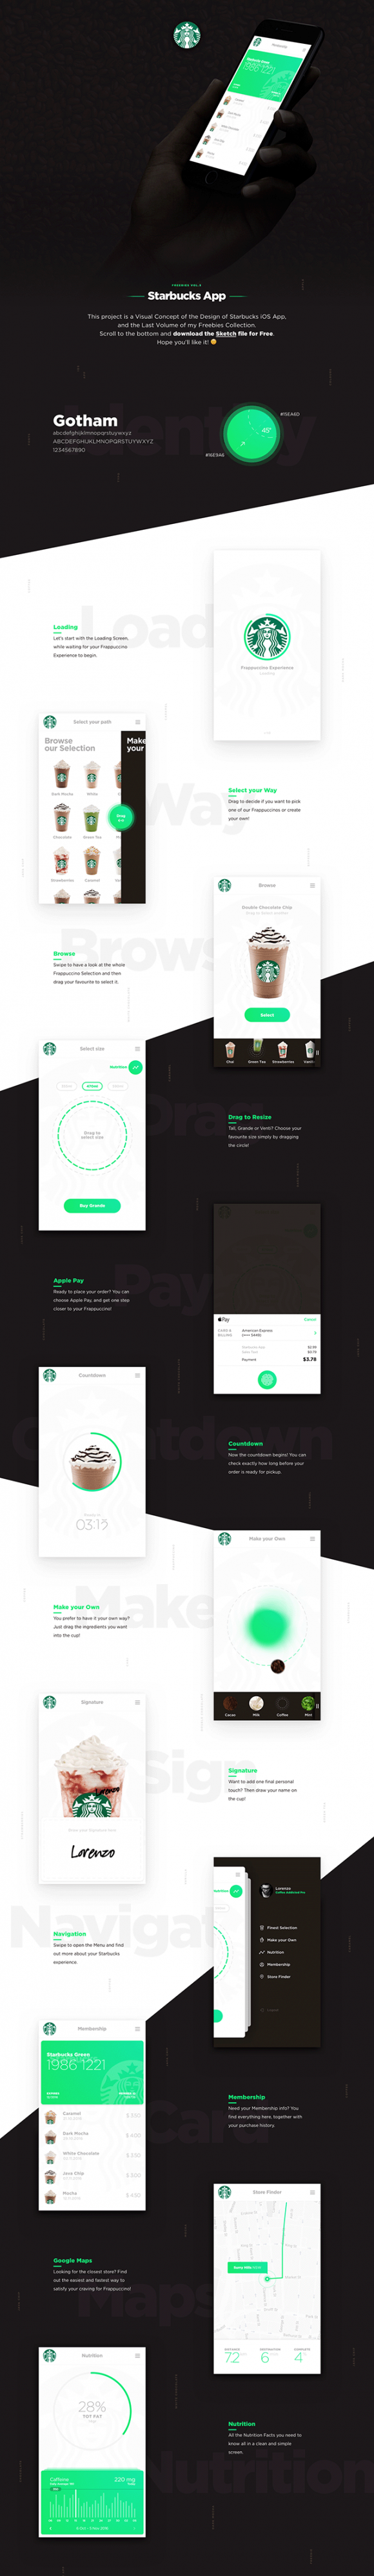 Starbucks app design concept - Full preview